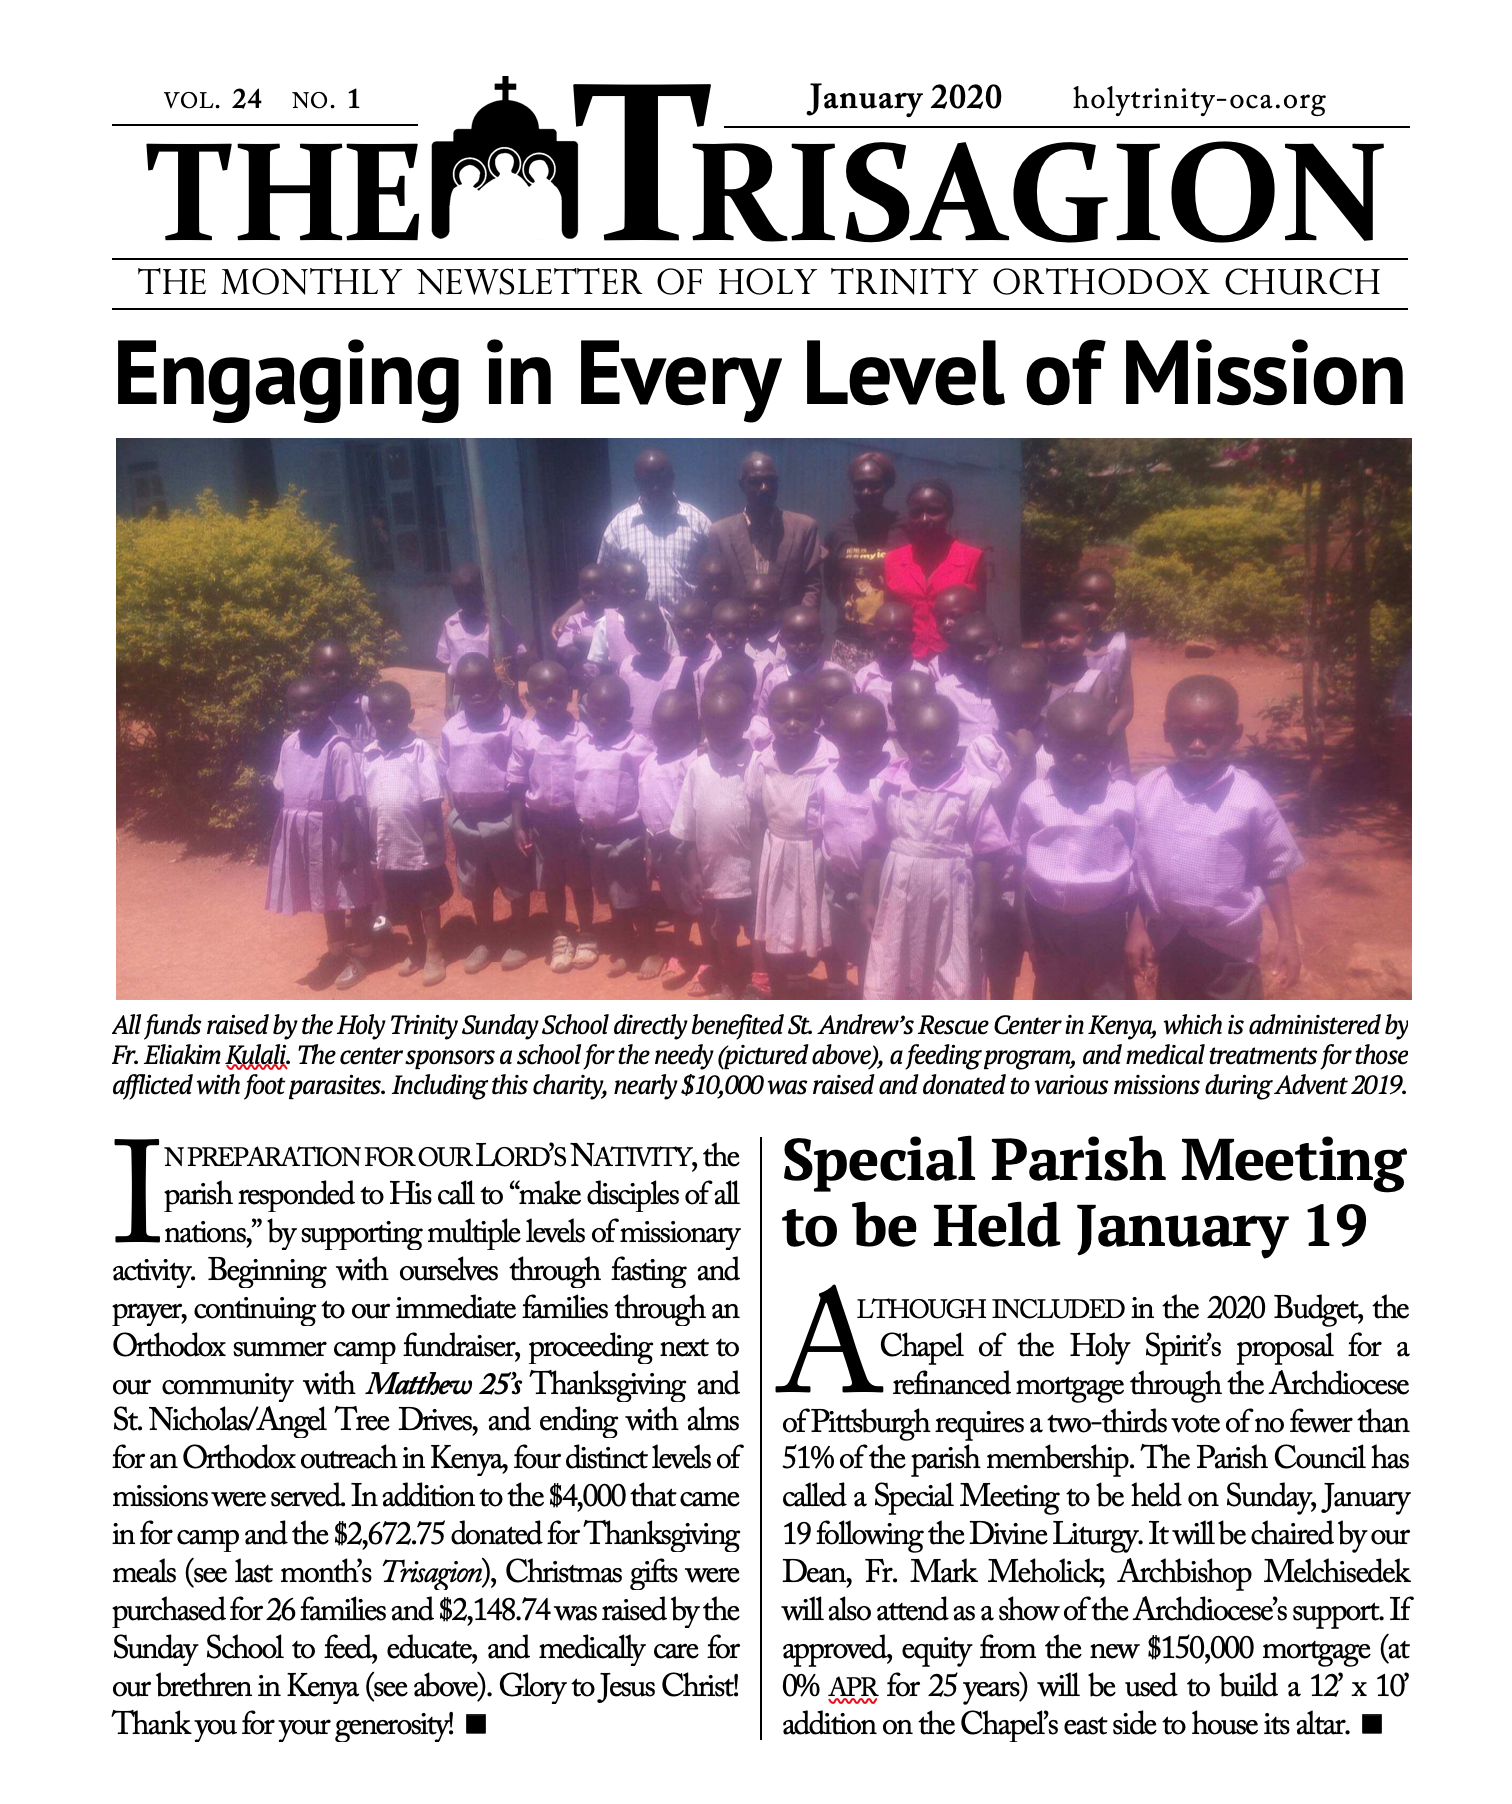 Click here to view the January 2020 issue.